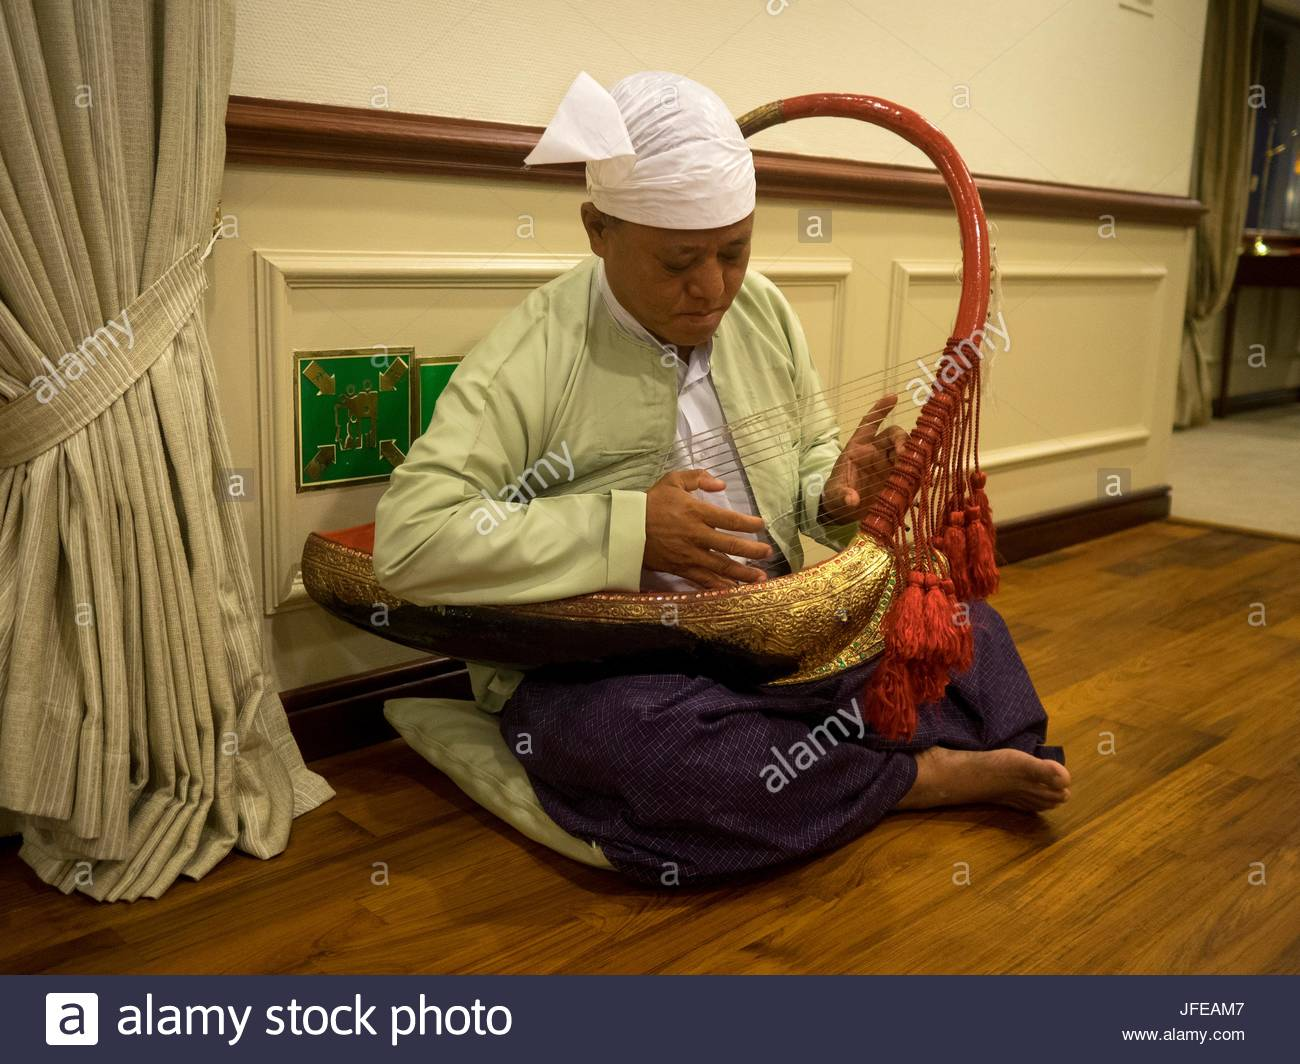 A man plays a traditional musical instrument. - Stock Image